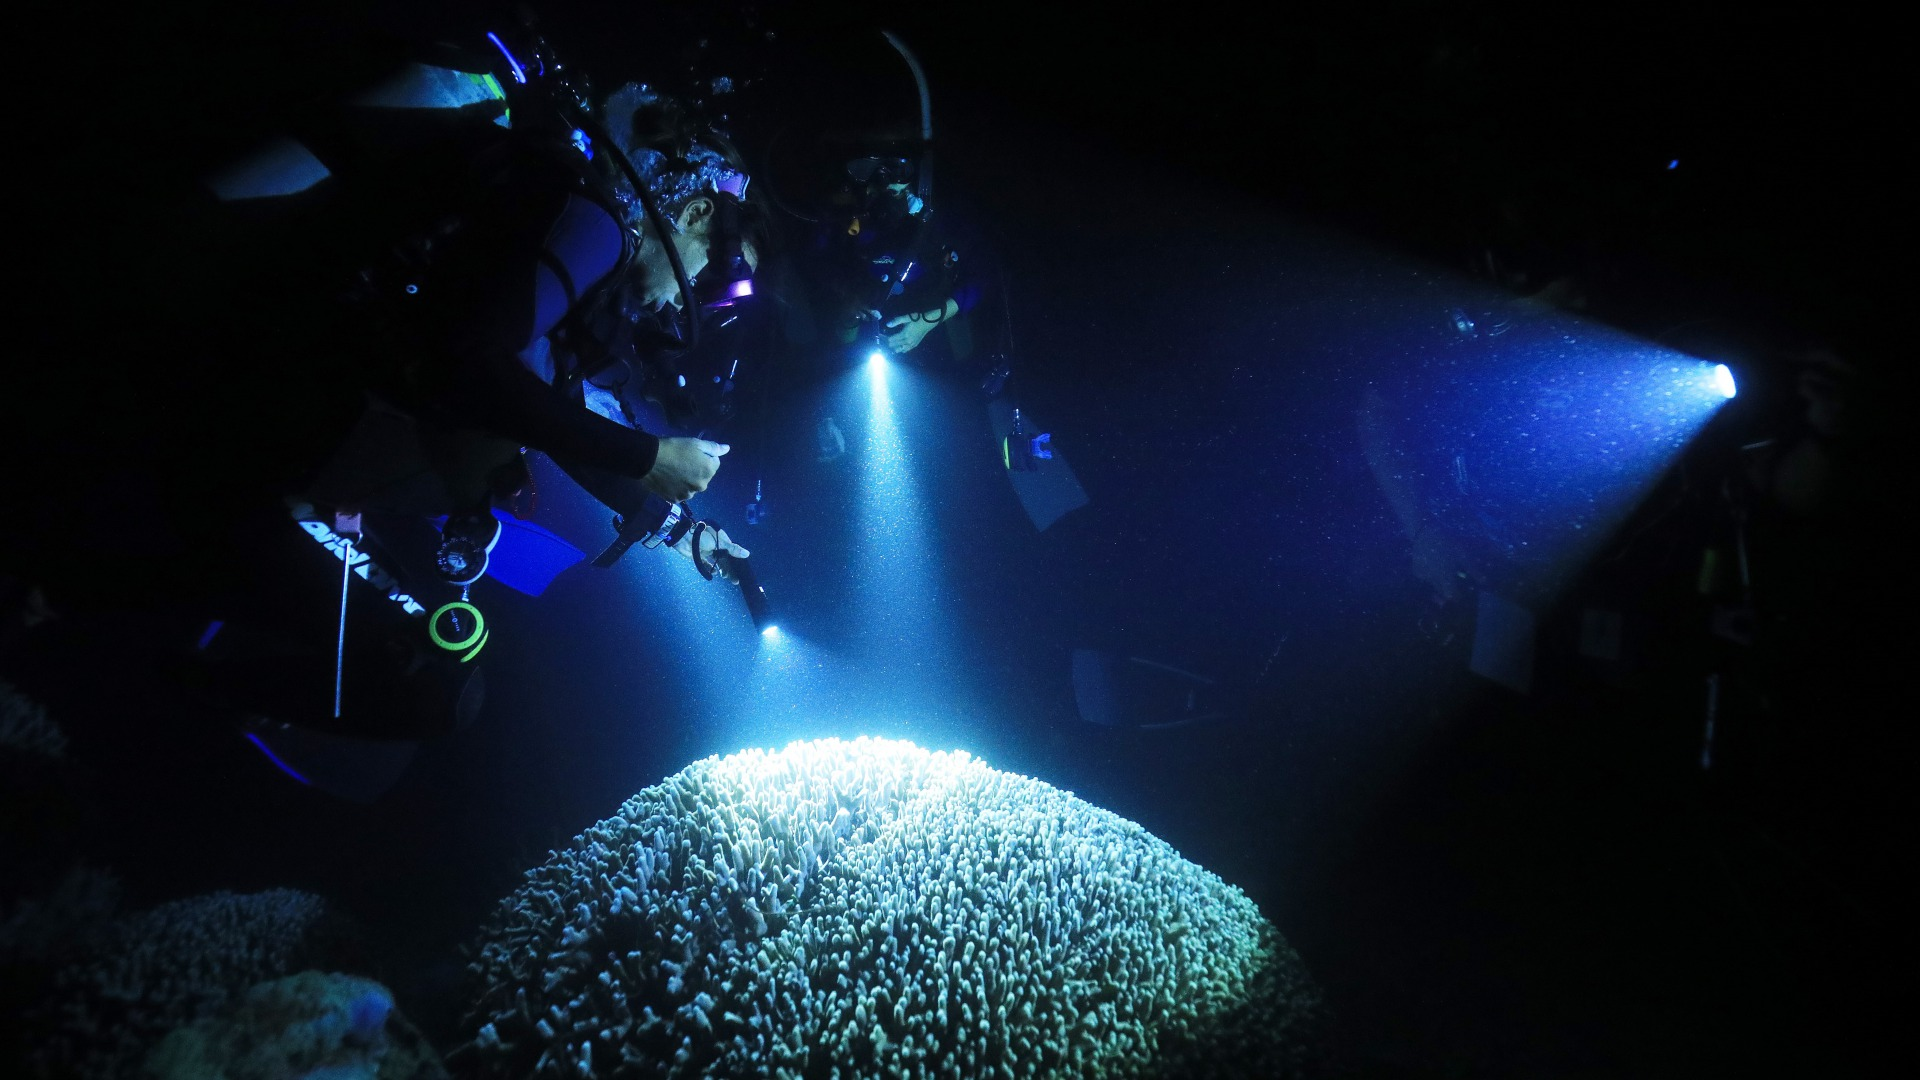 diving in the night